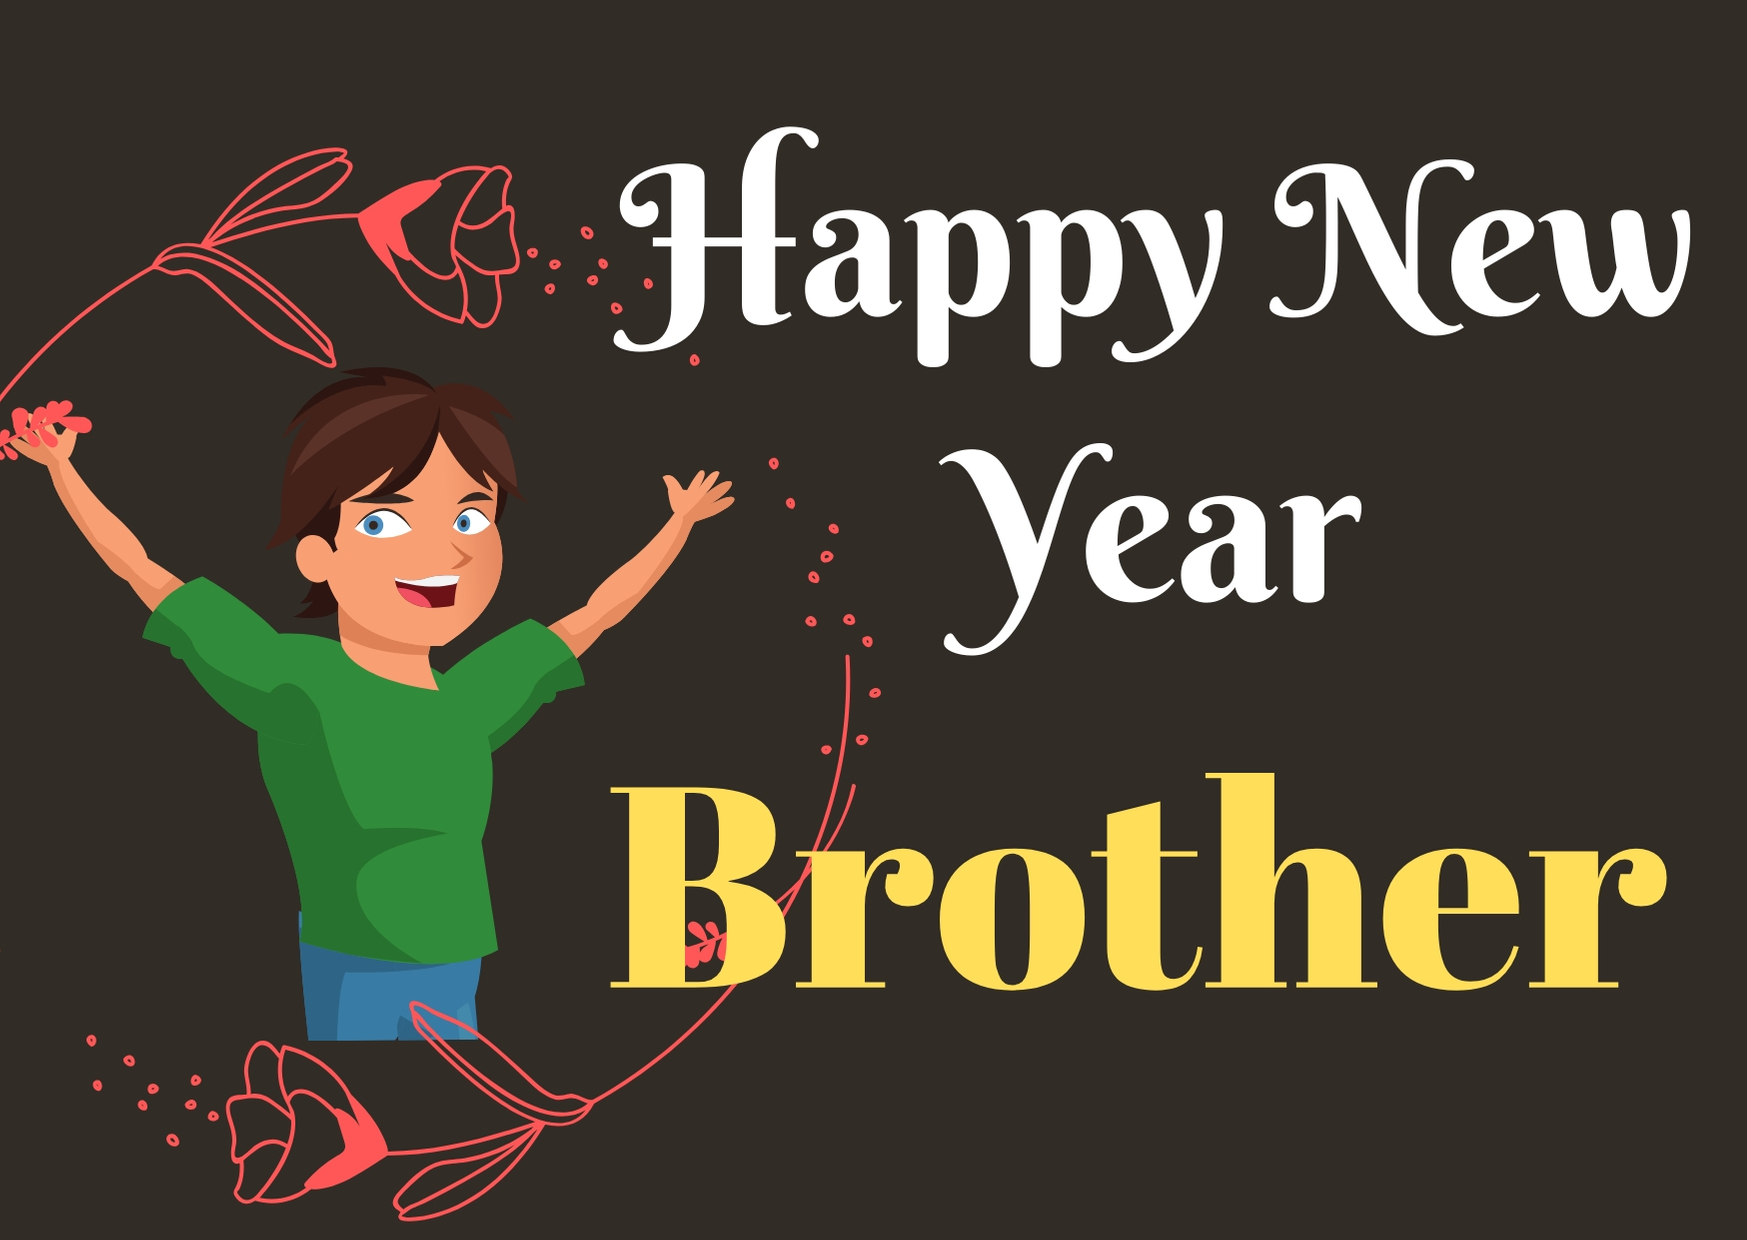 Happy New Year 2020 wishes for brother